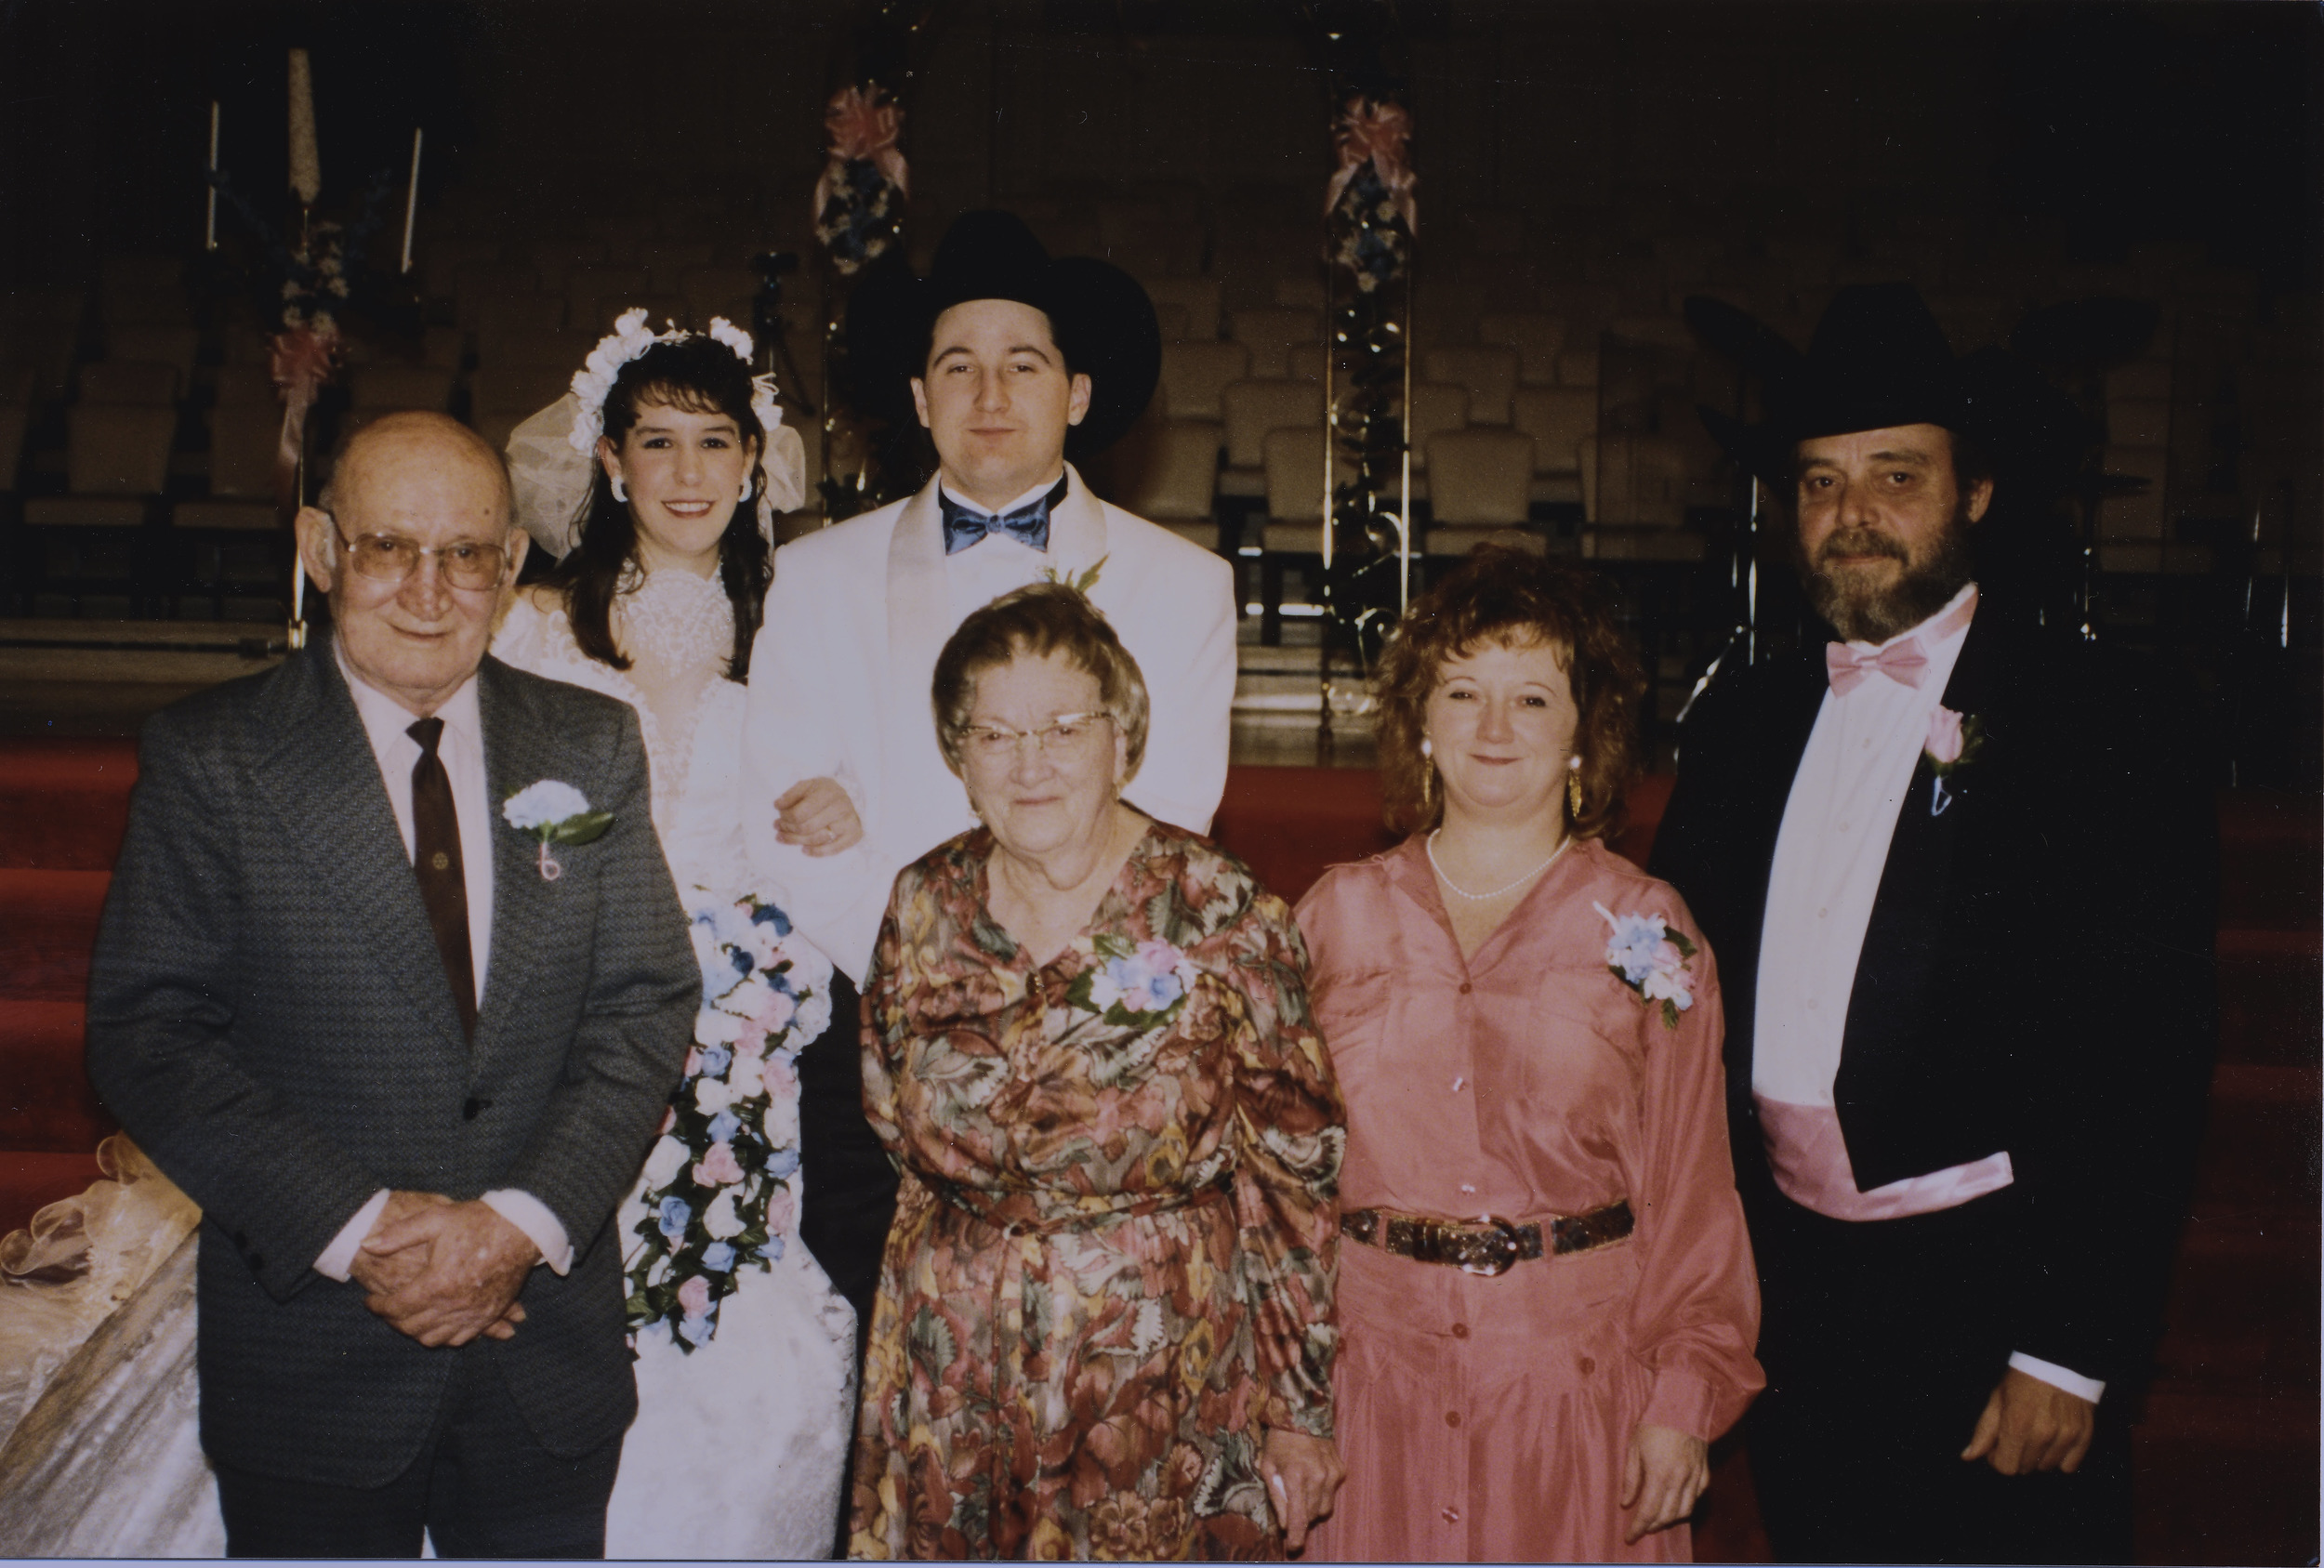 This is the image that reminds  why I do what I do! My wedding day with my grandparents, mom and her husband LT. (Yes that is me with a cowboy hat on)